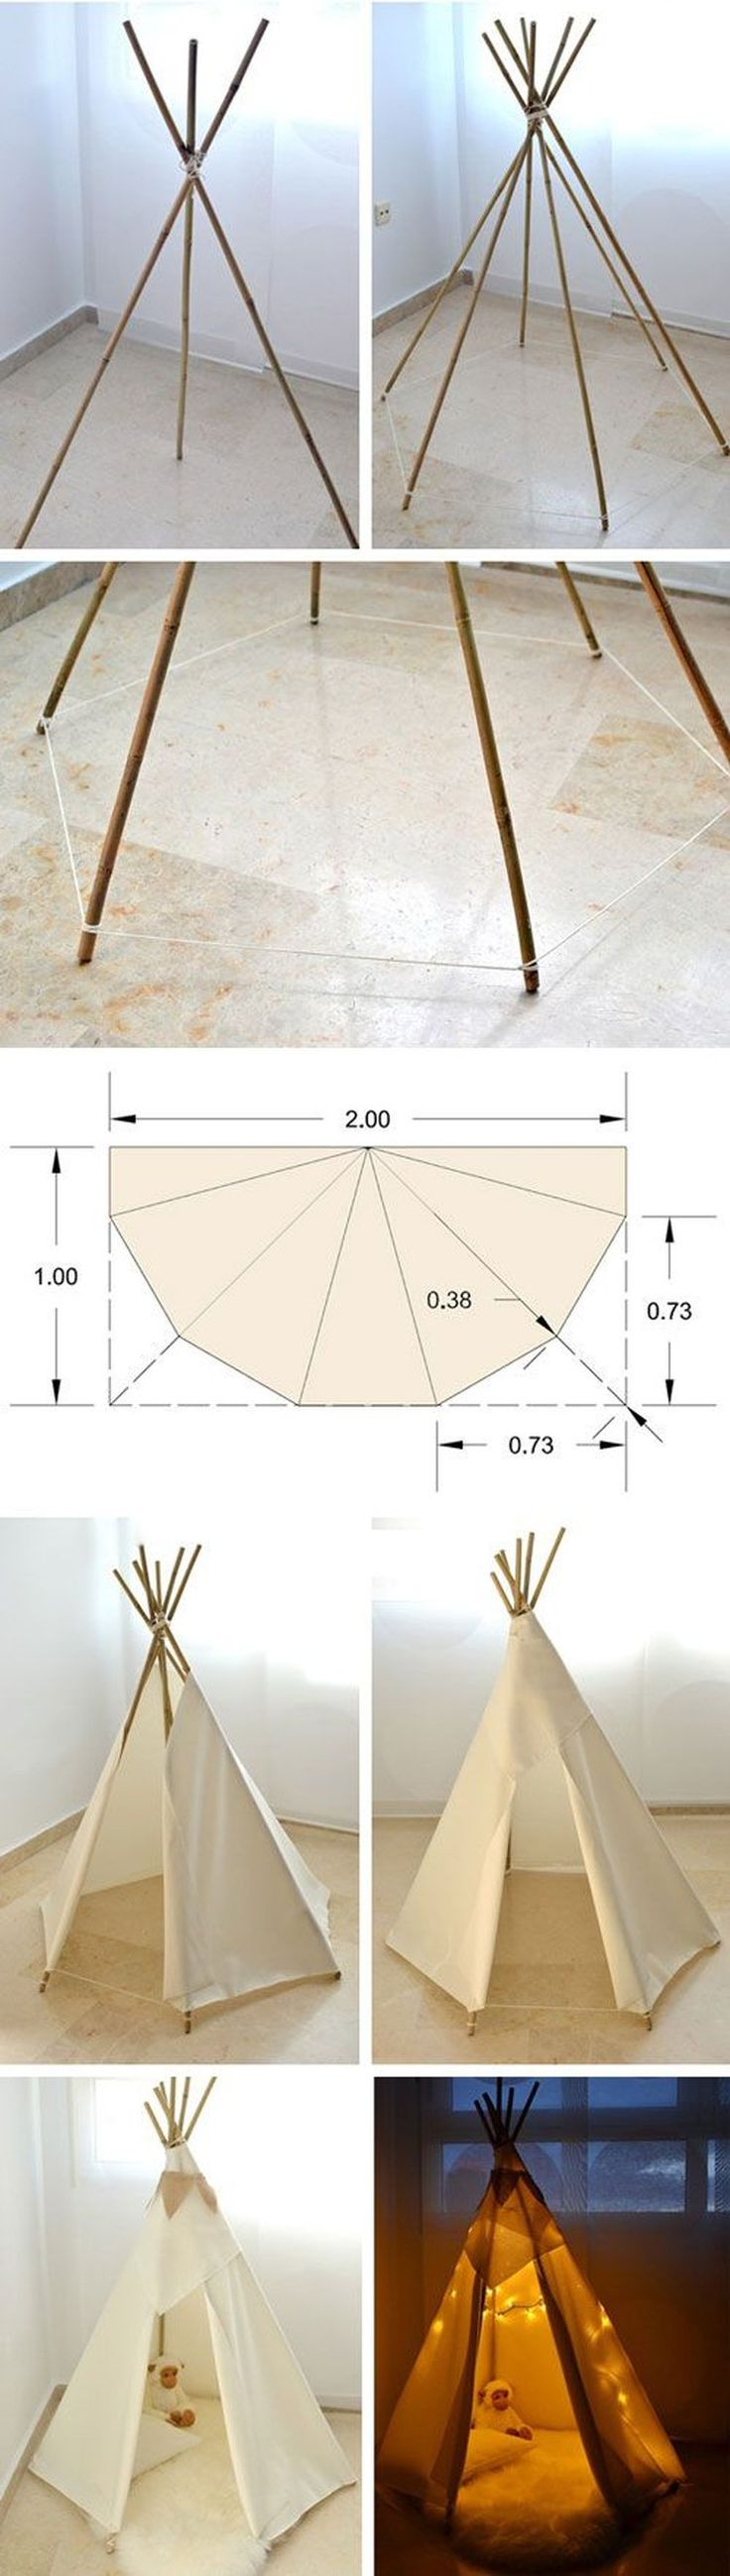 Tipi dla dzieci tipi craft and teepee pattern for Diy cat teepee